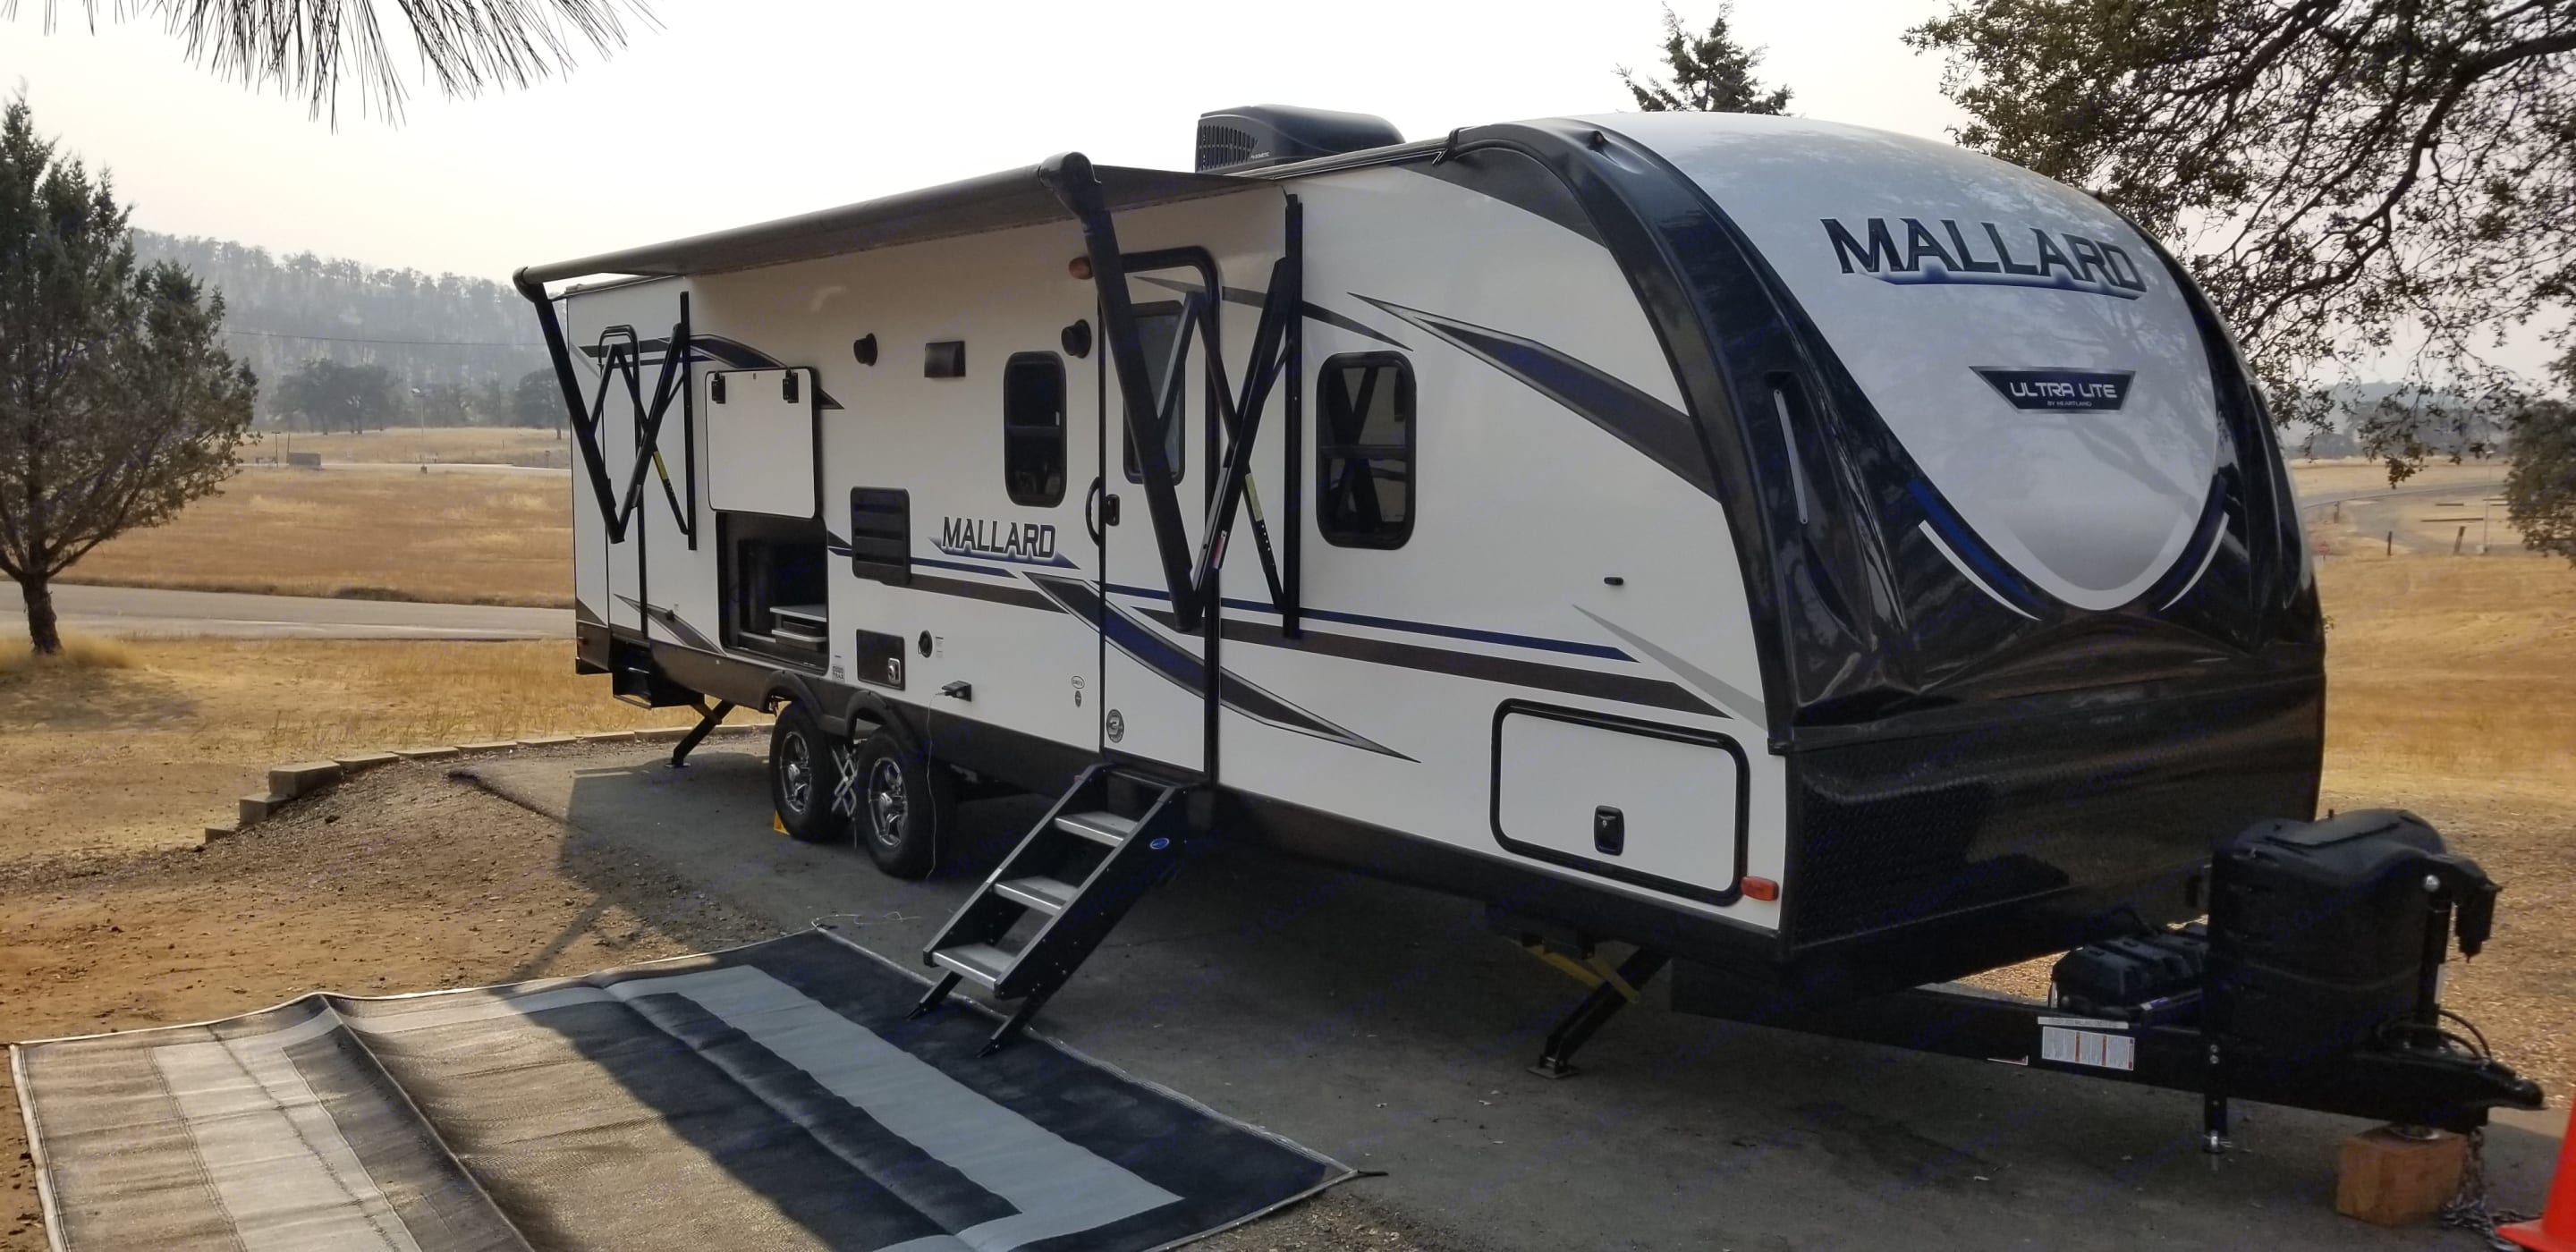 The heavy duty steps makes it safe and easy to get in and out.. Heartland Mallard 2020